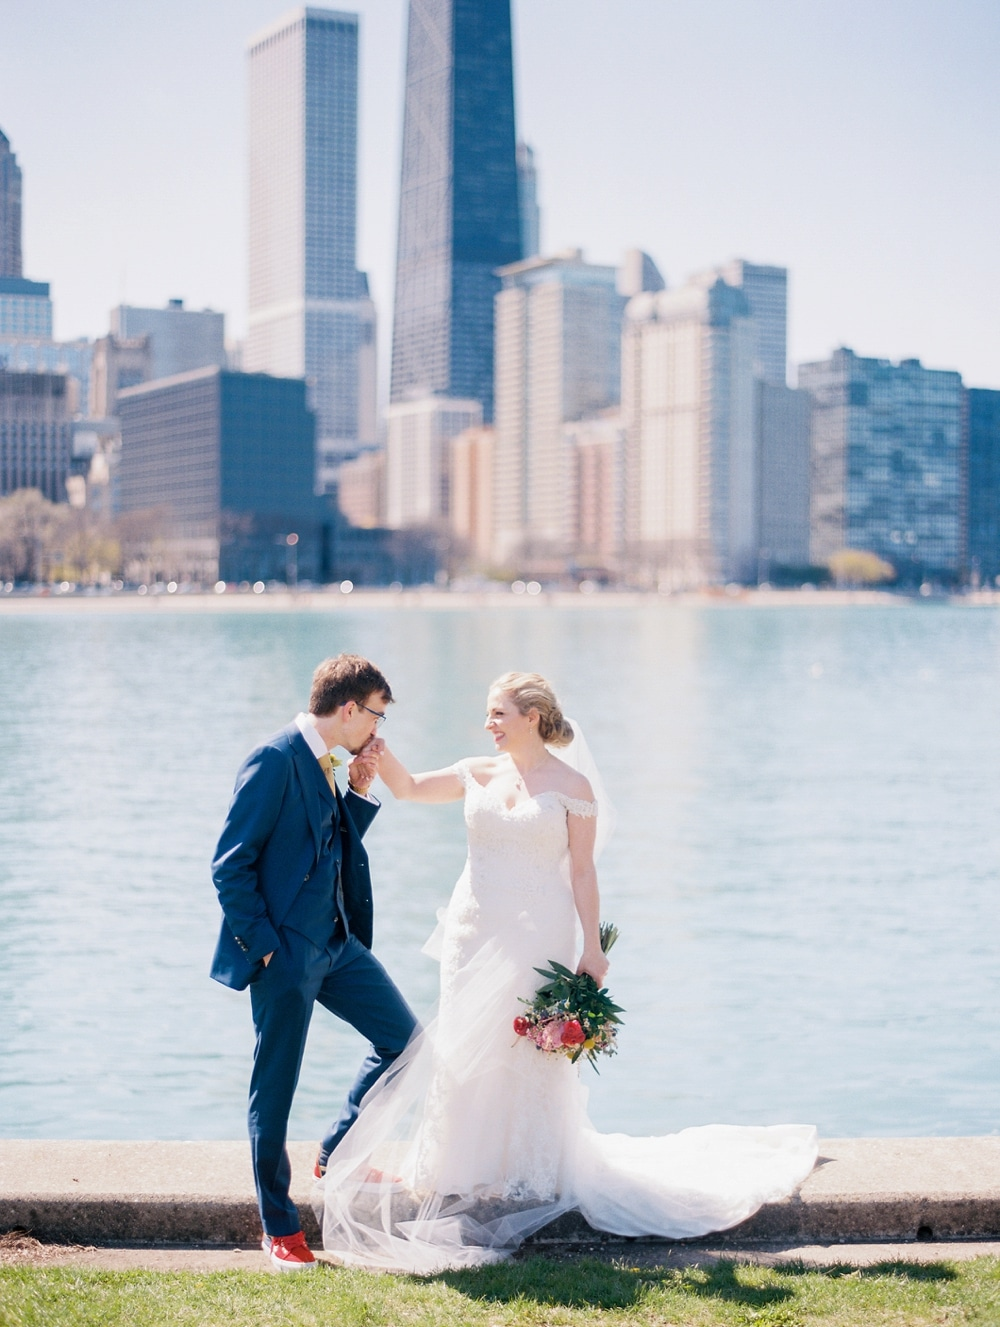 kristin-la-voie-photography-Chicago-Illuminating-company-wedding-95